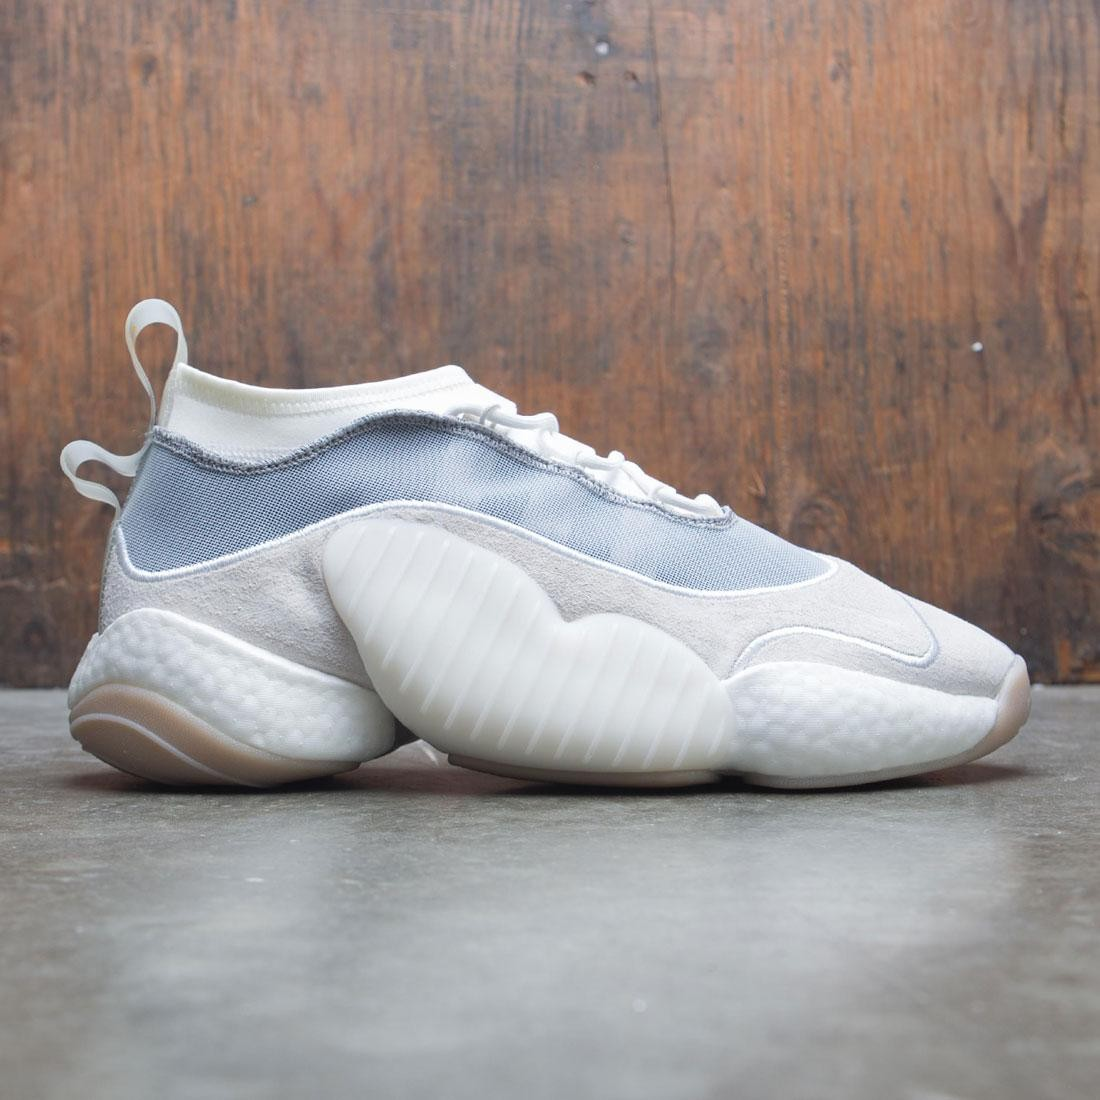 Adidas x Bristol Studio Men Crazy BYW LVL II (white / cloud white / collegiate navy)